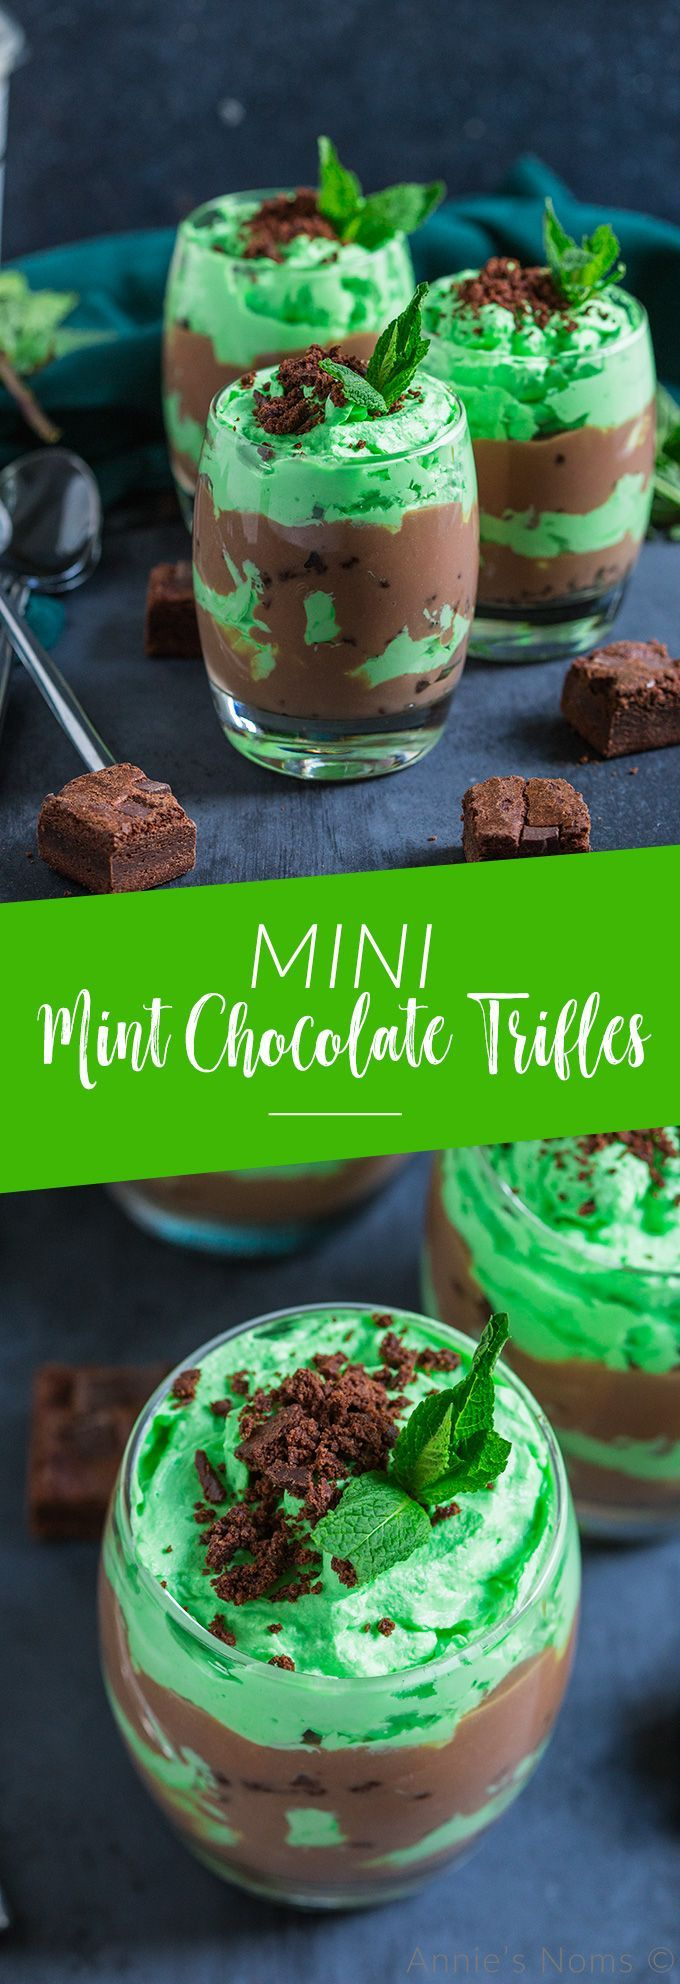 Mini Mint Chocolate Trifles  - Sides & Sweets! -